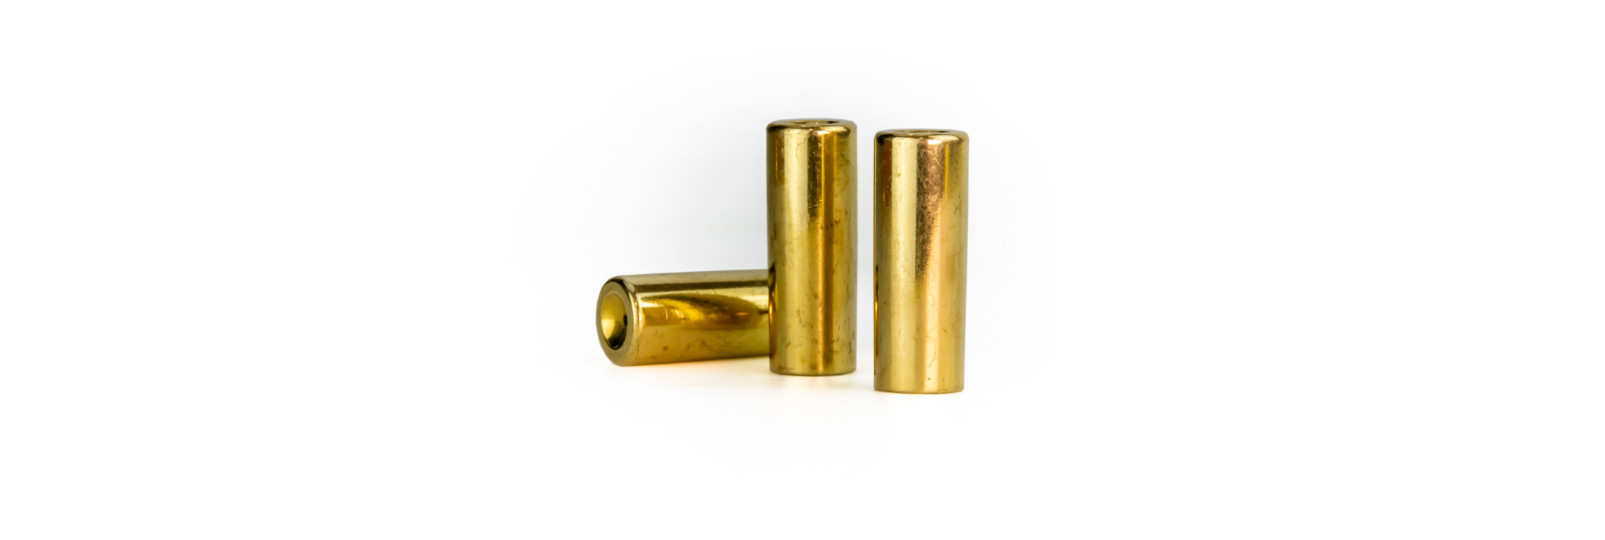 10 original brass cases bag .54